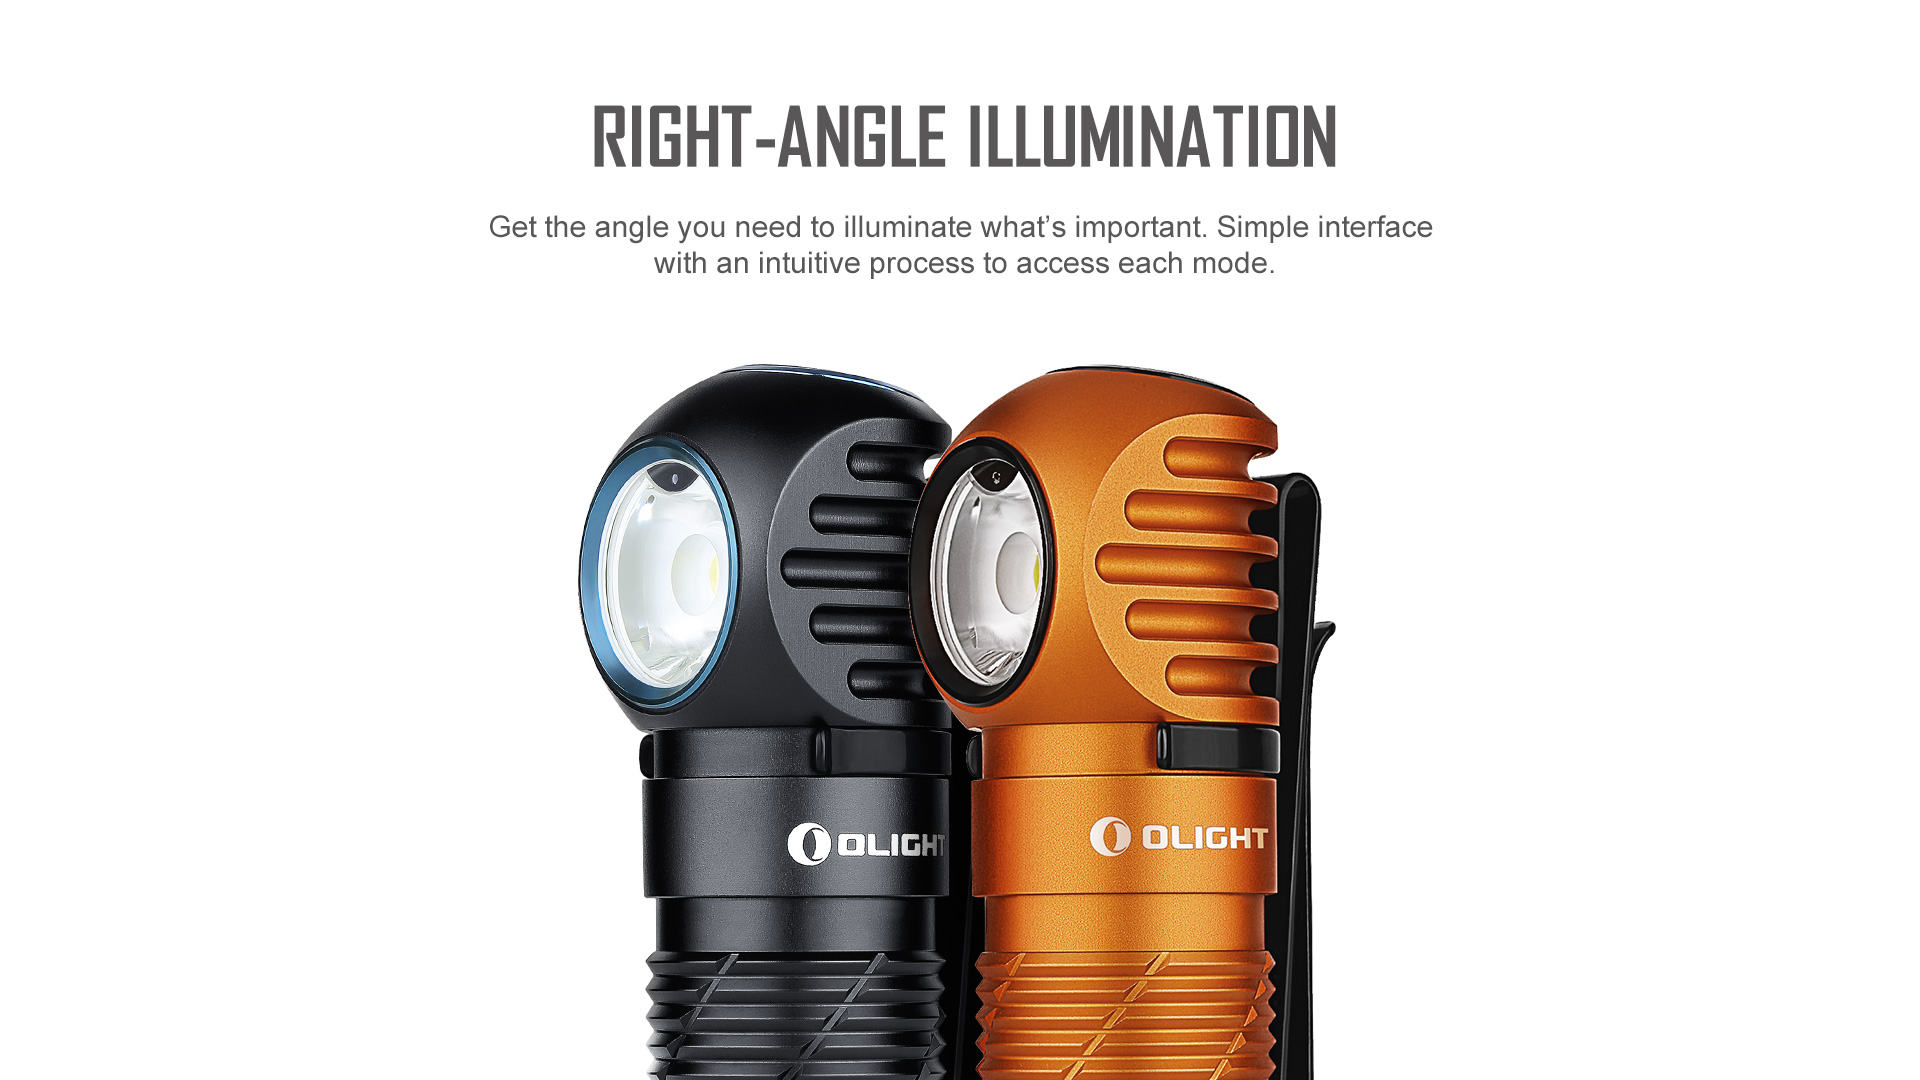 Olight Perun 2 with right angle lighting